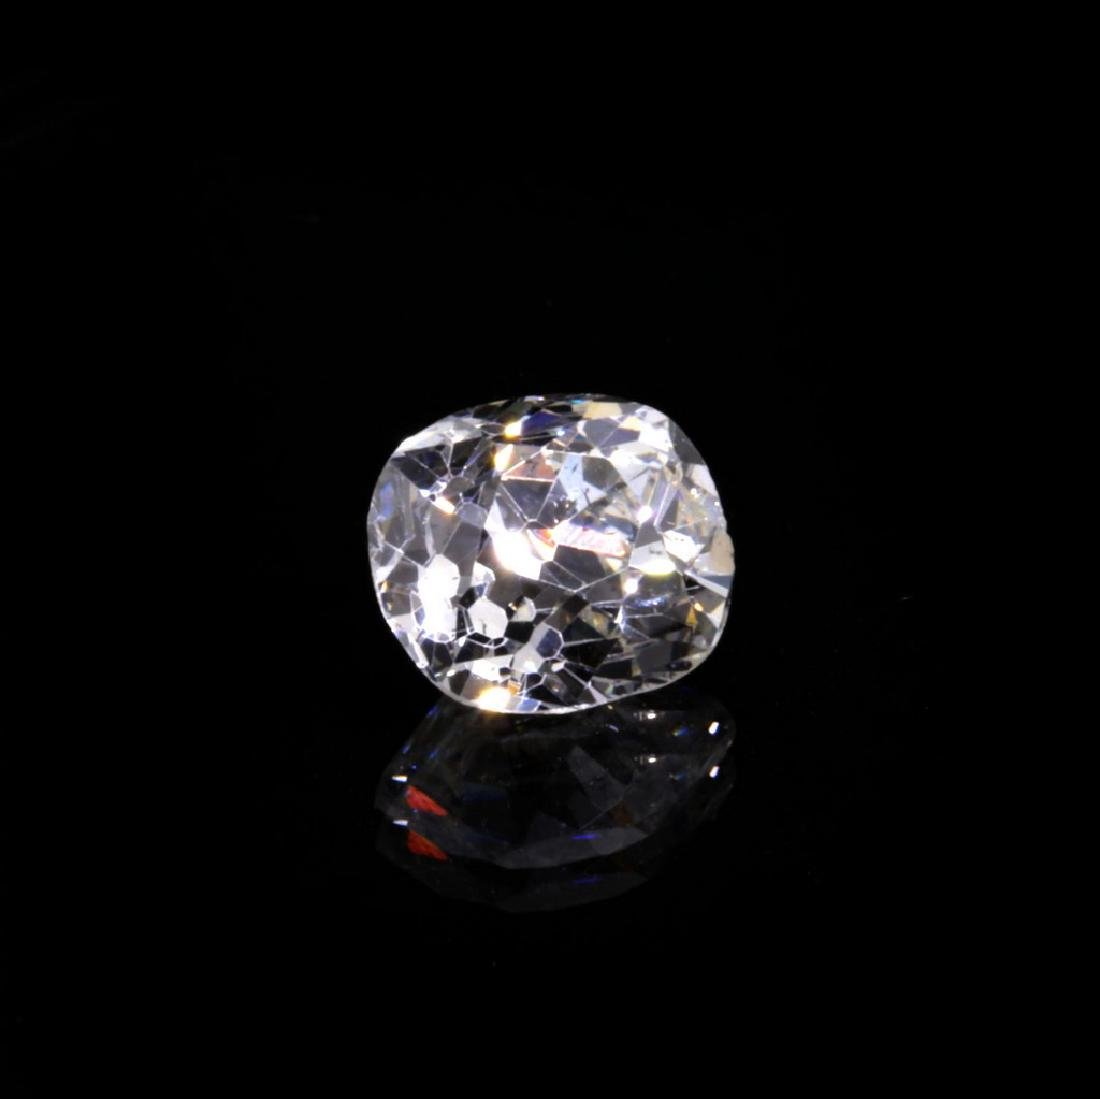 0.99 Ct. Natural G Color Old cut diamond. - 3